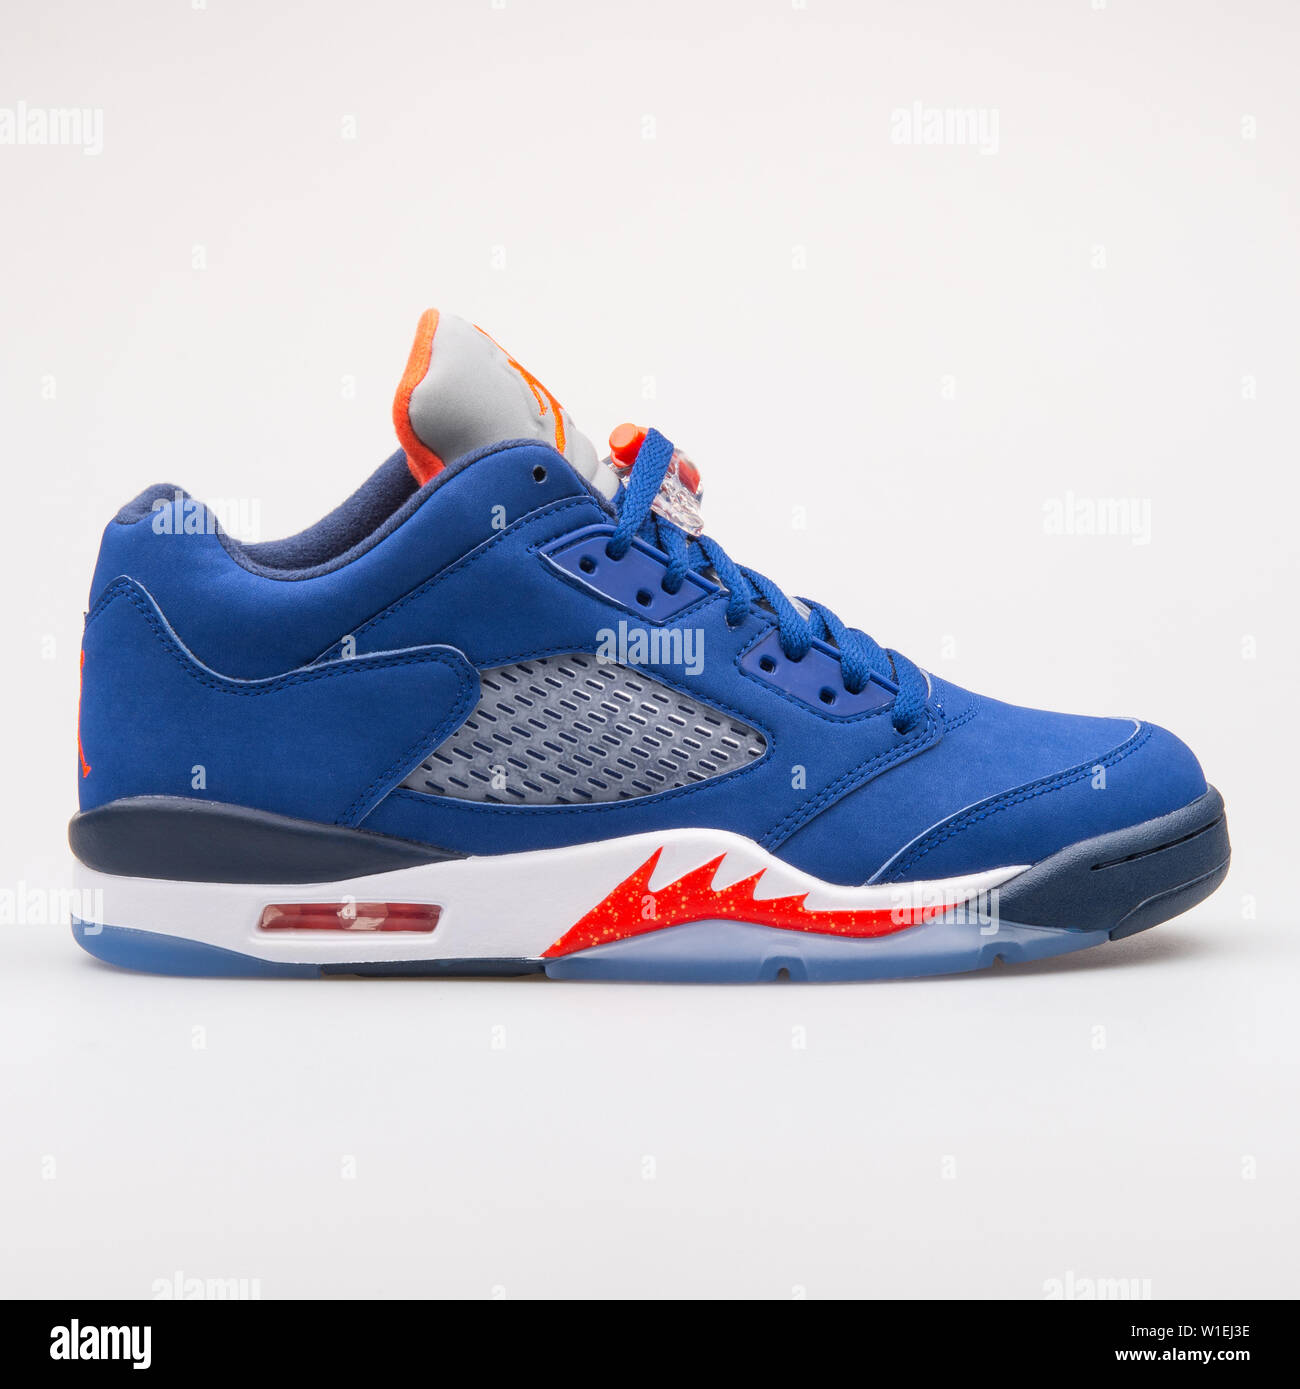 d44ab475 VIENNA, AUSTRIA - AUGUST 23, 2017: Nike Air Jordan 5 Retro Low Knicks blue  and red sneaker on white background.